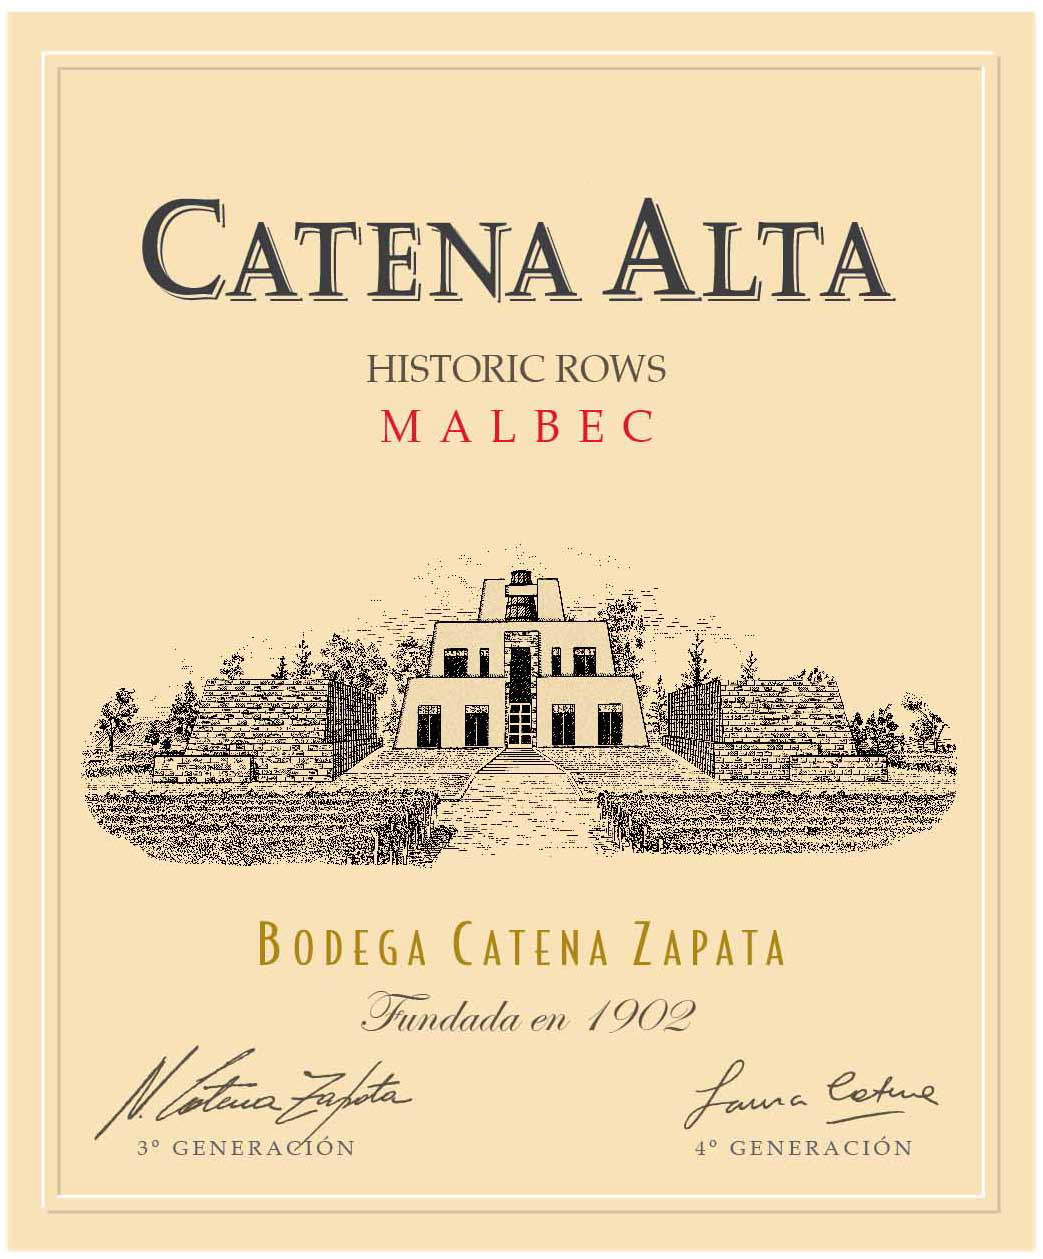 2015 Catena Zapata Malbec Catena Alta Historic Rows